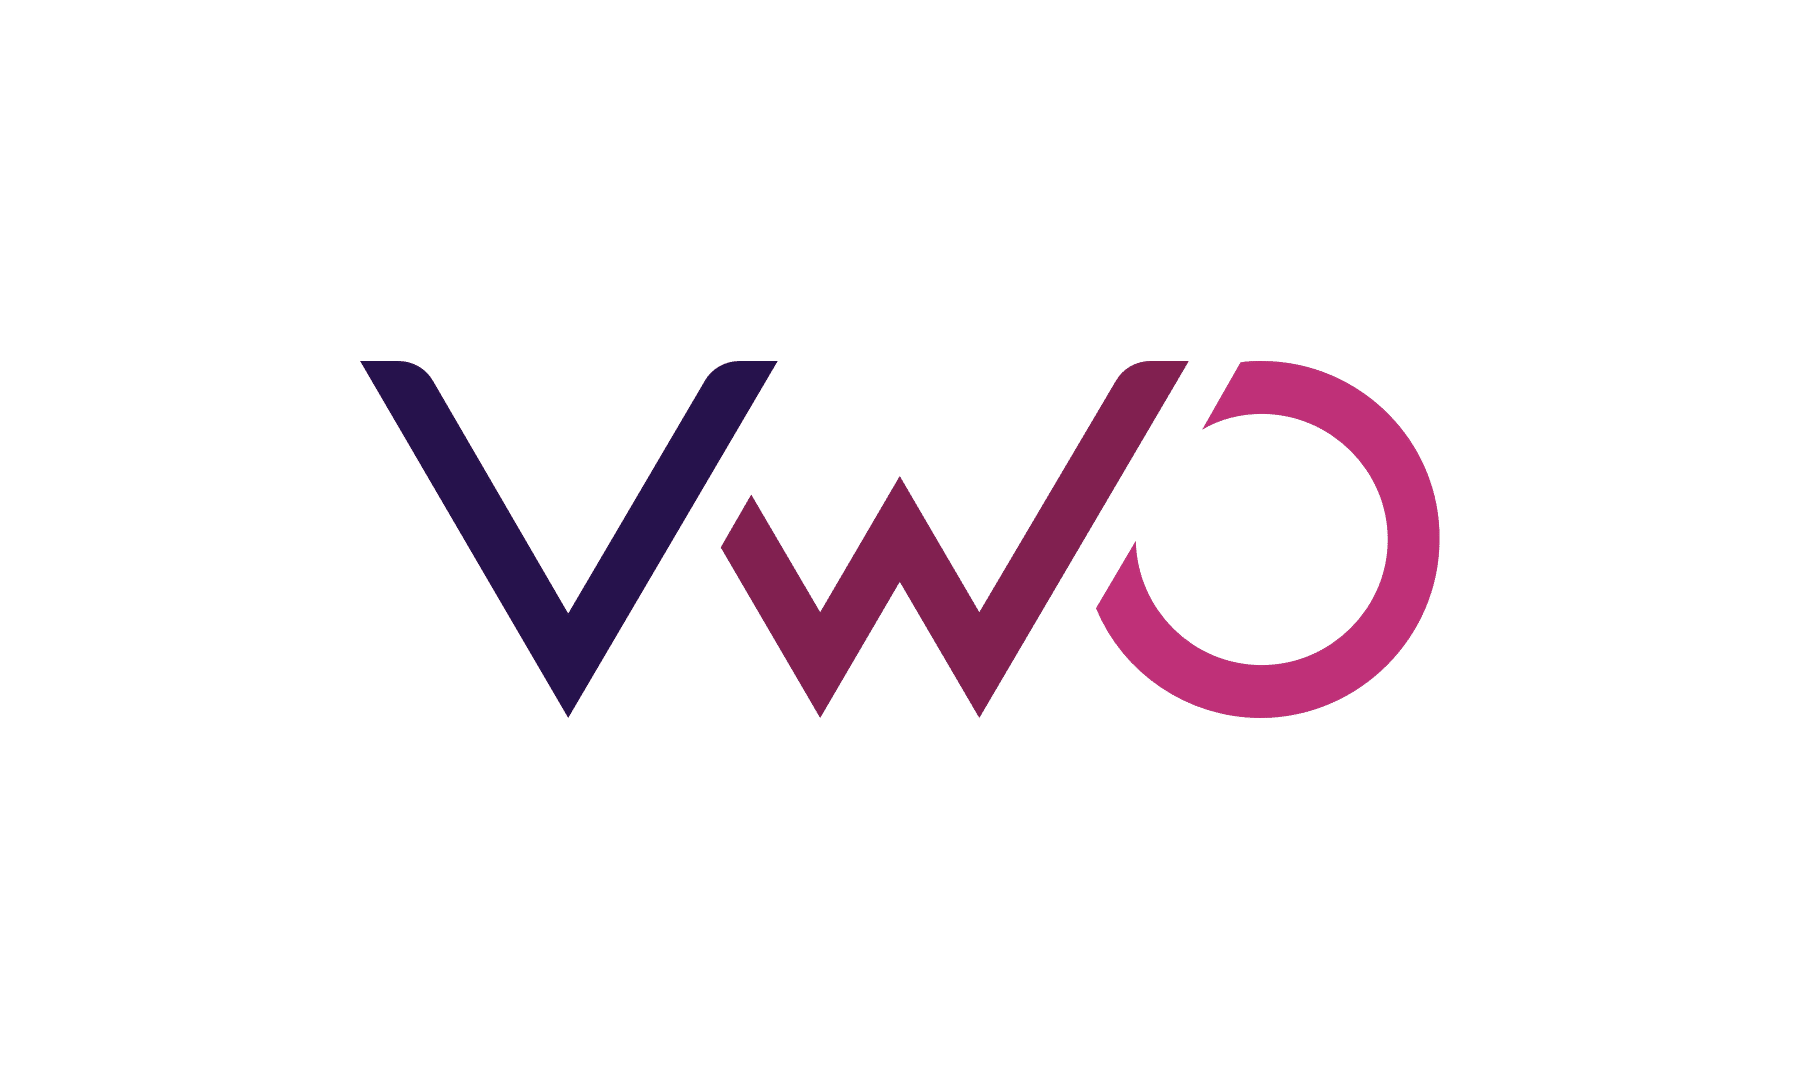 VWO Engage - Push Notification Software : SaaSworthy.com